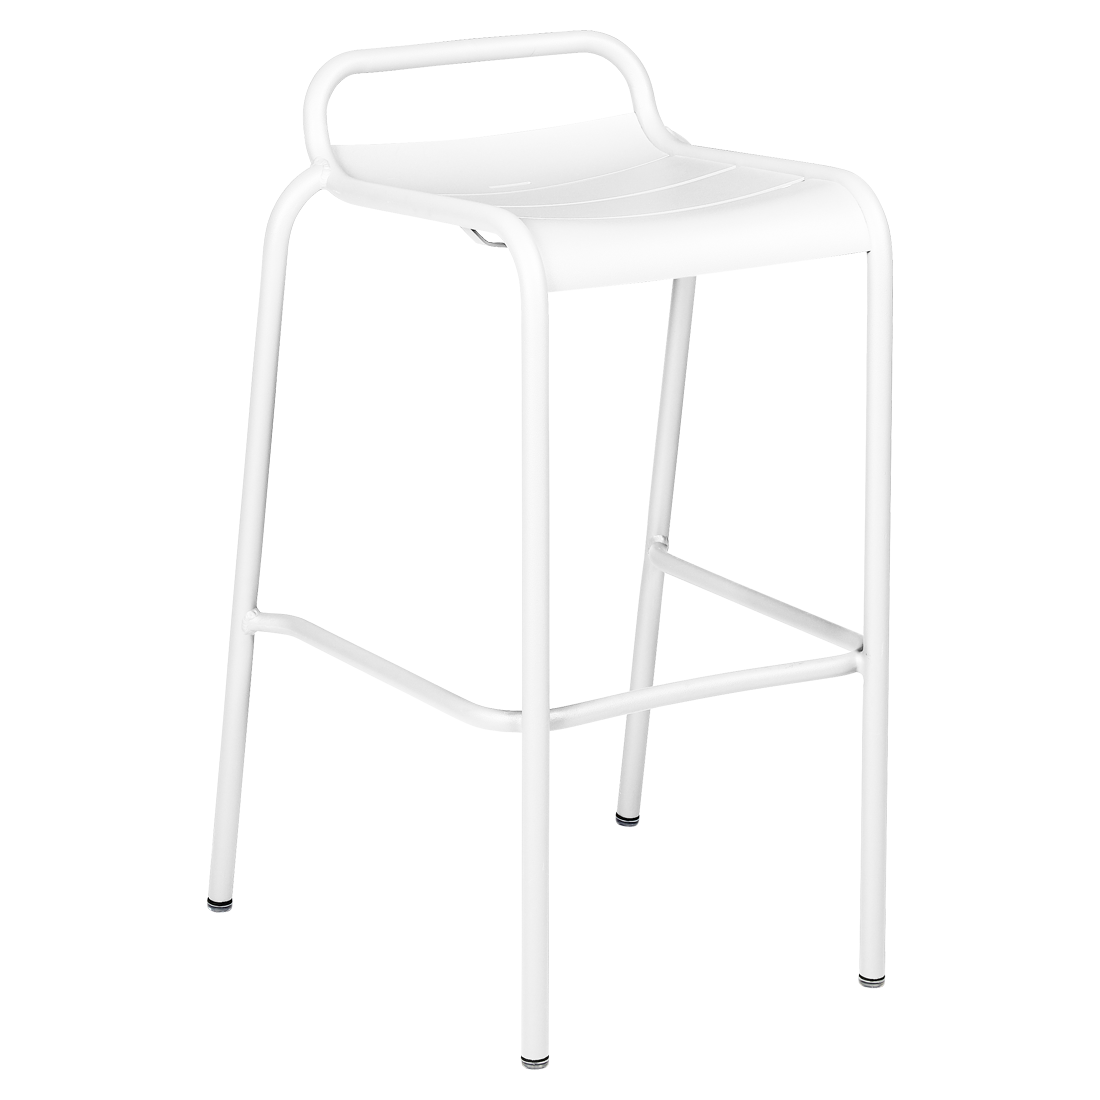 LUXEMBOURG / 4112 BAR STOOL